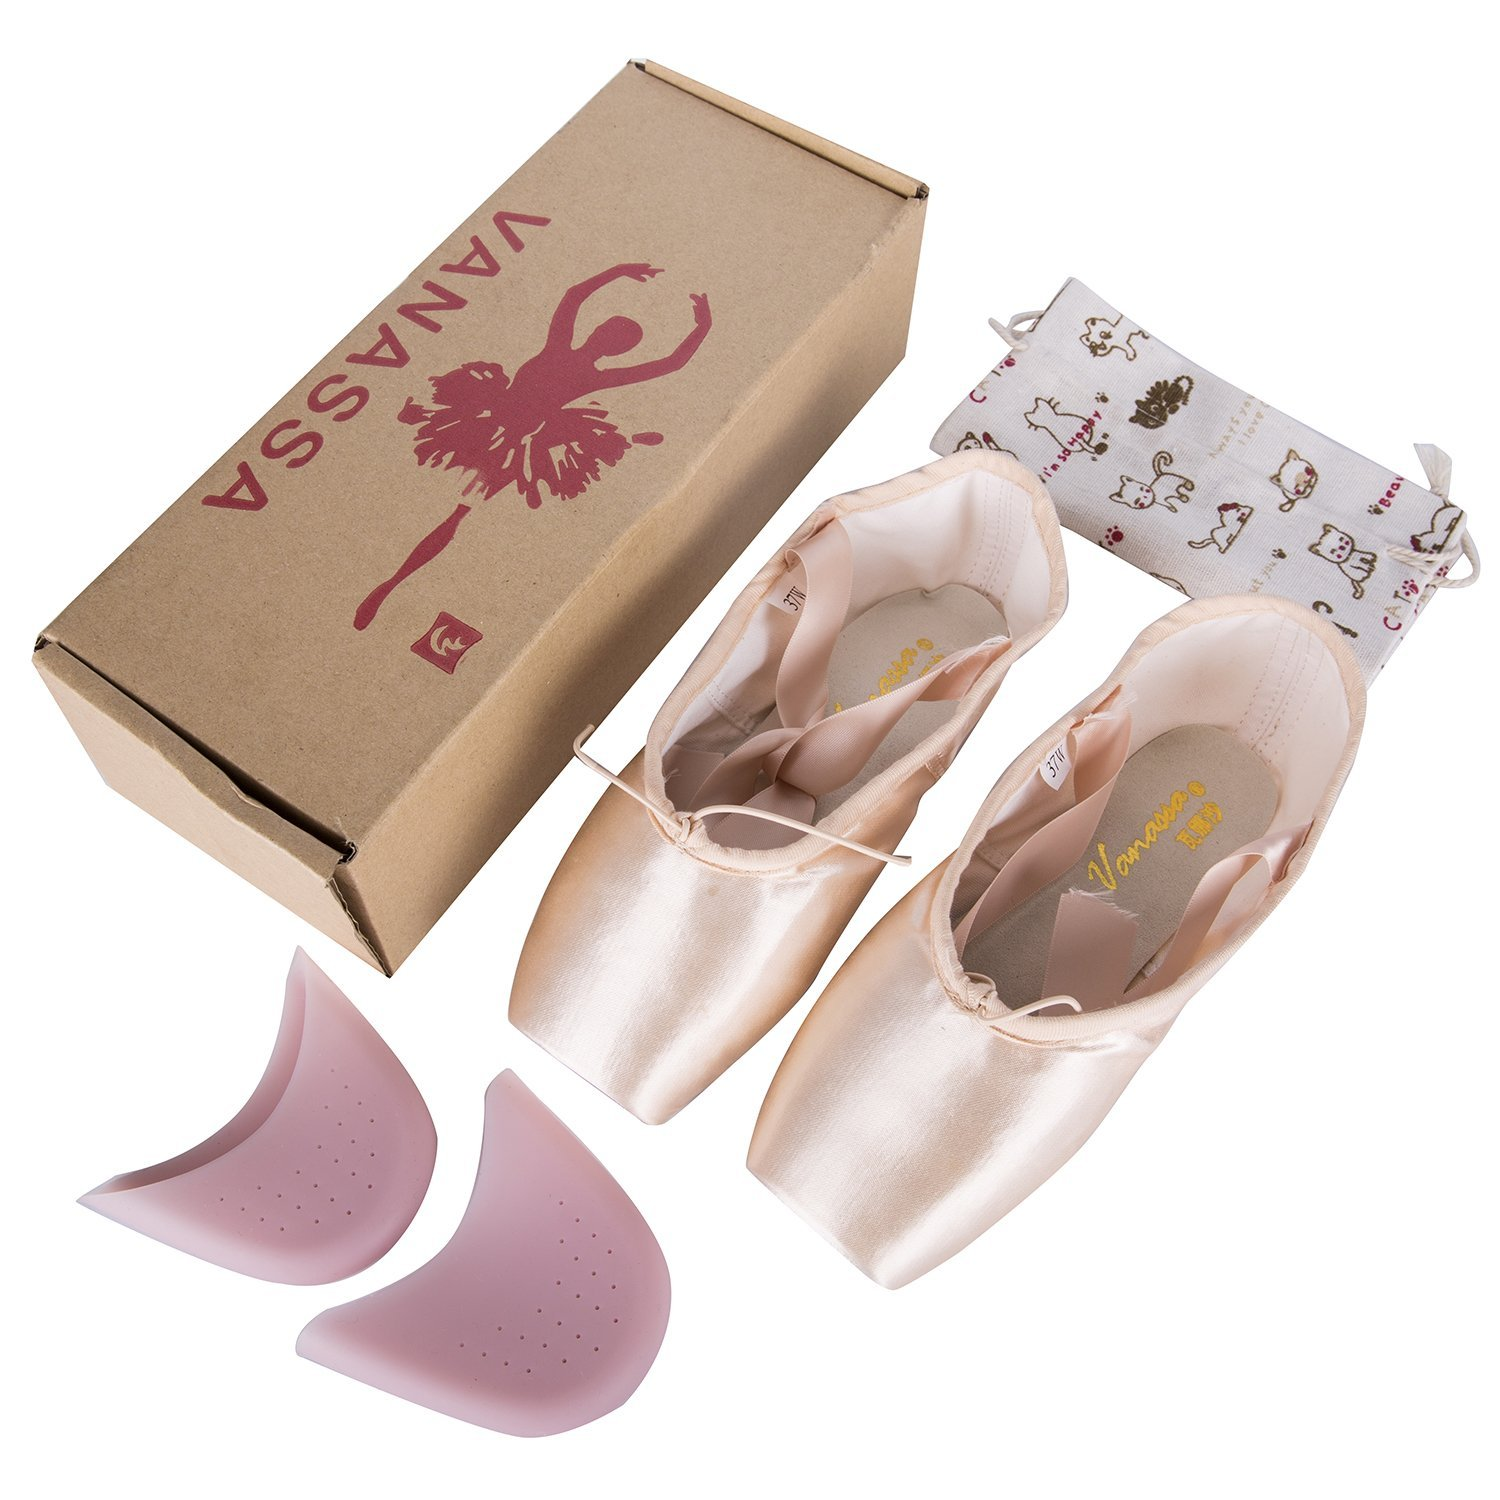 WENDYWU Professional Ballet Slipper Dance Shoe Pink Ballet Pointe Shoes with Toe Pad Protector for Girls colorful ballet pointe shoes silky satin material beautiful colors professional ballet dance pointe shoes